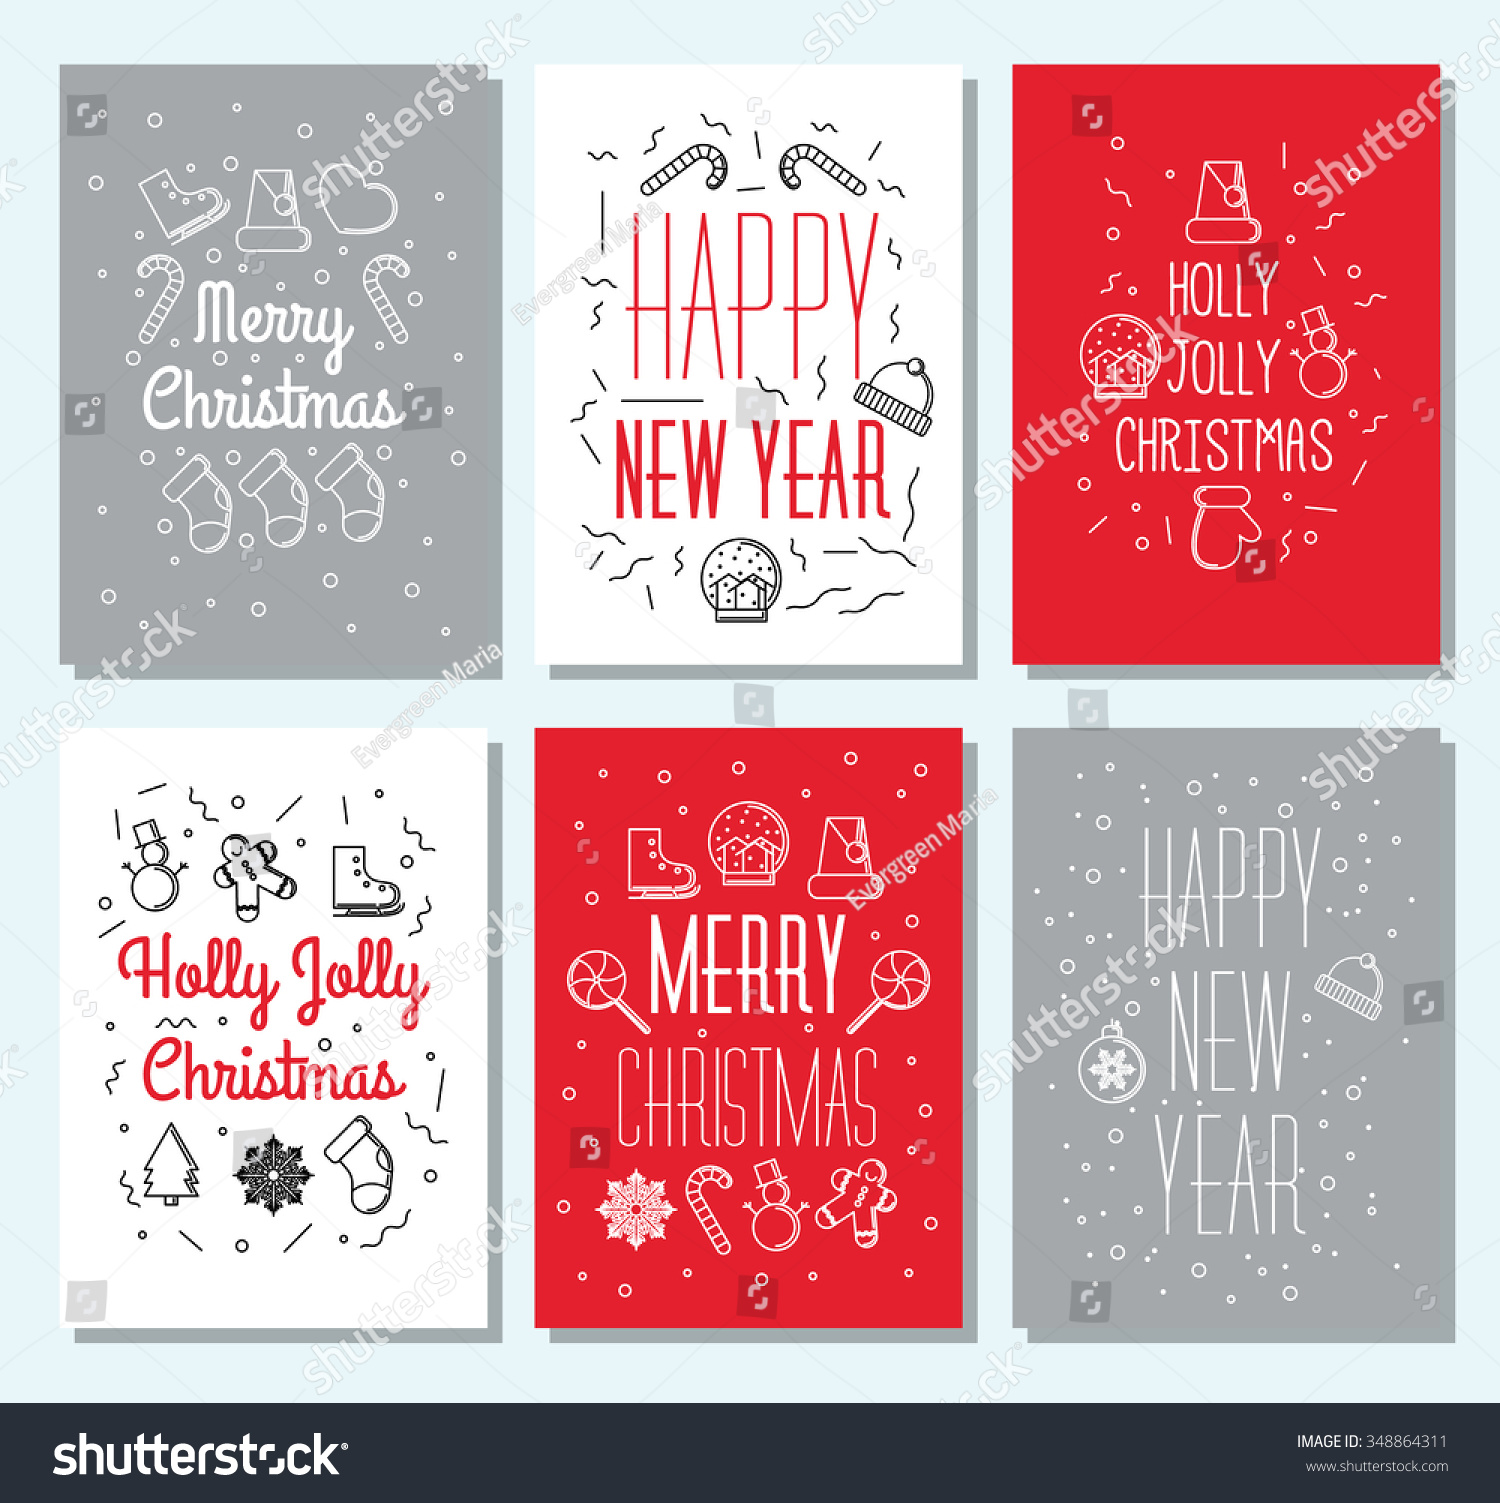 set of 6 vintage cute christmas cards with calligraphy and winter holiday elements greeting hand